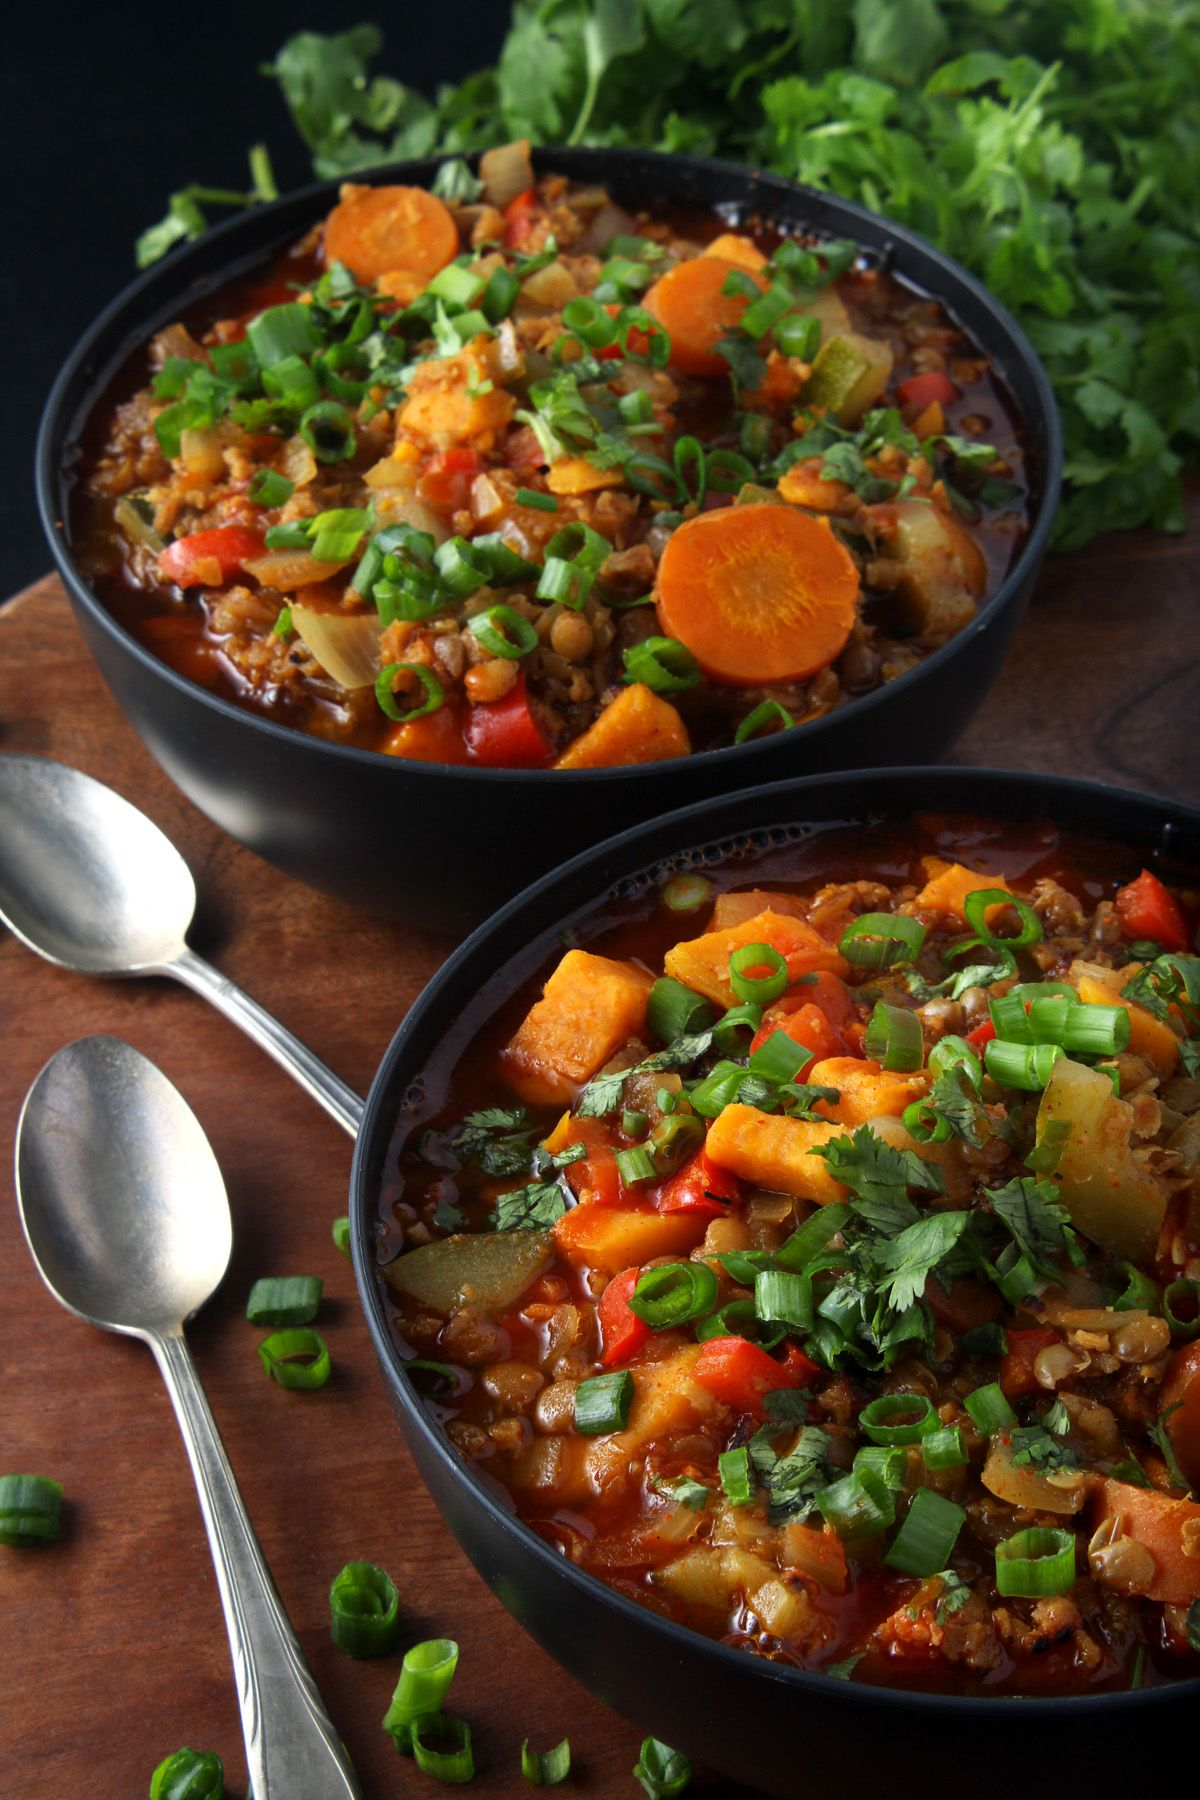 Forget The Apocalypse With This Easy Vegan Chili Recipe Recipe Chili Recipes Vegan Chili Recipes